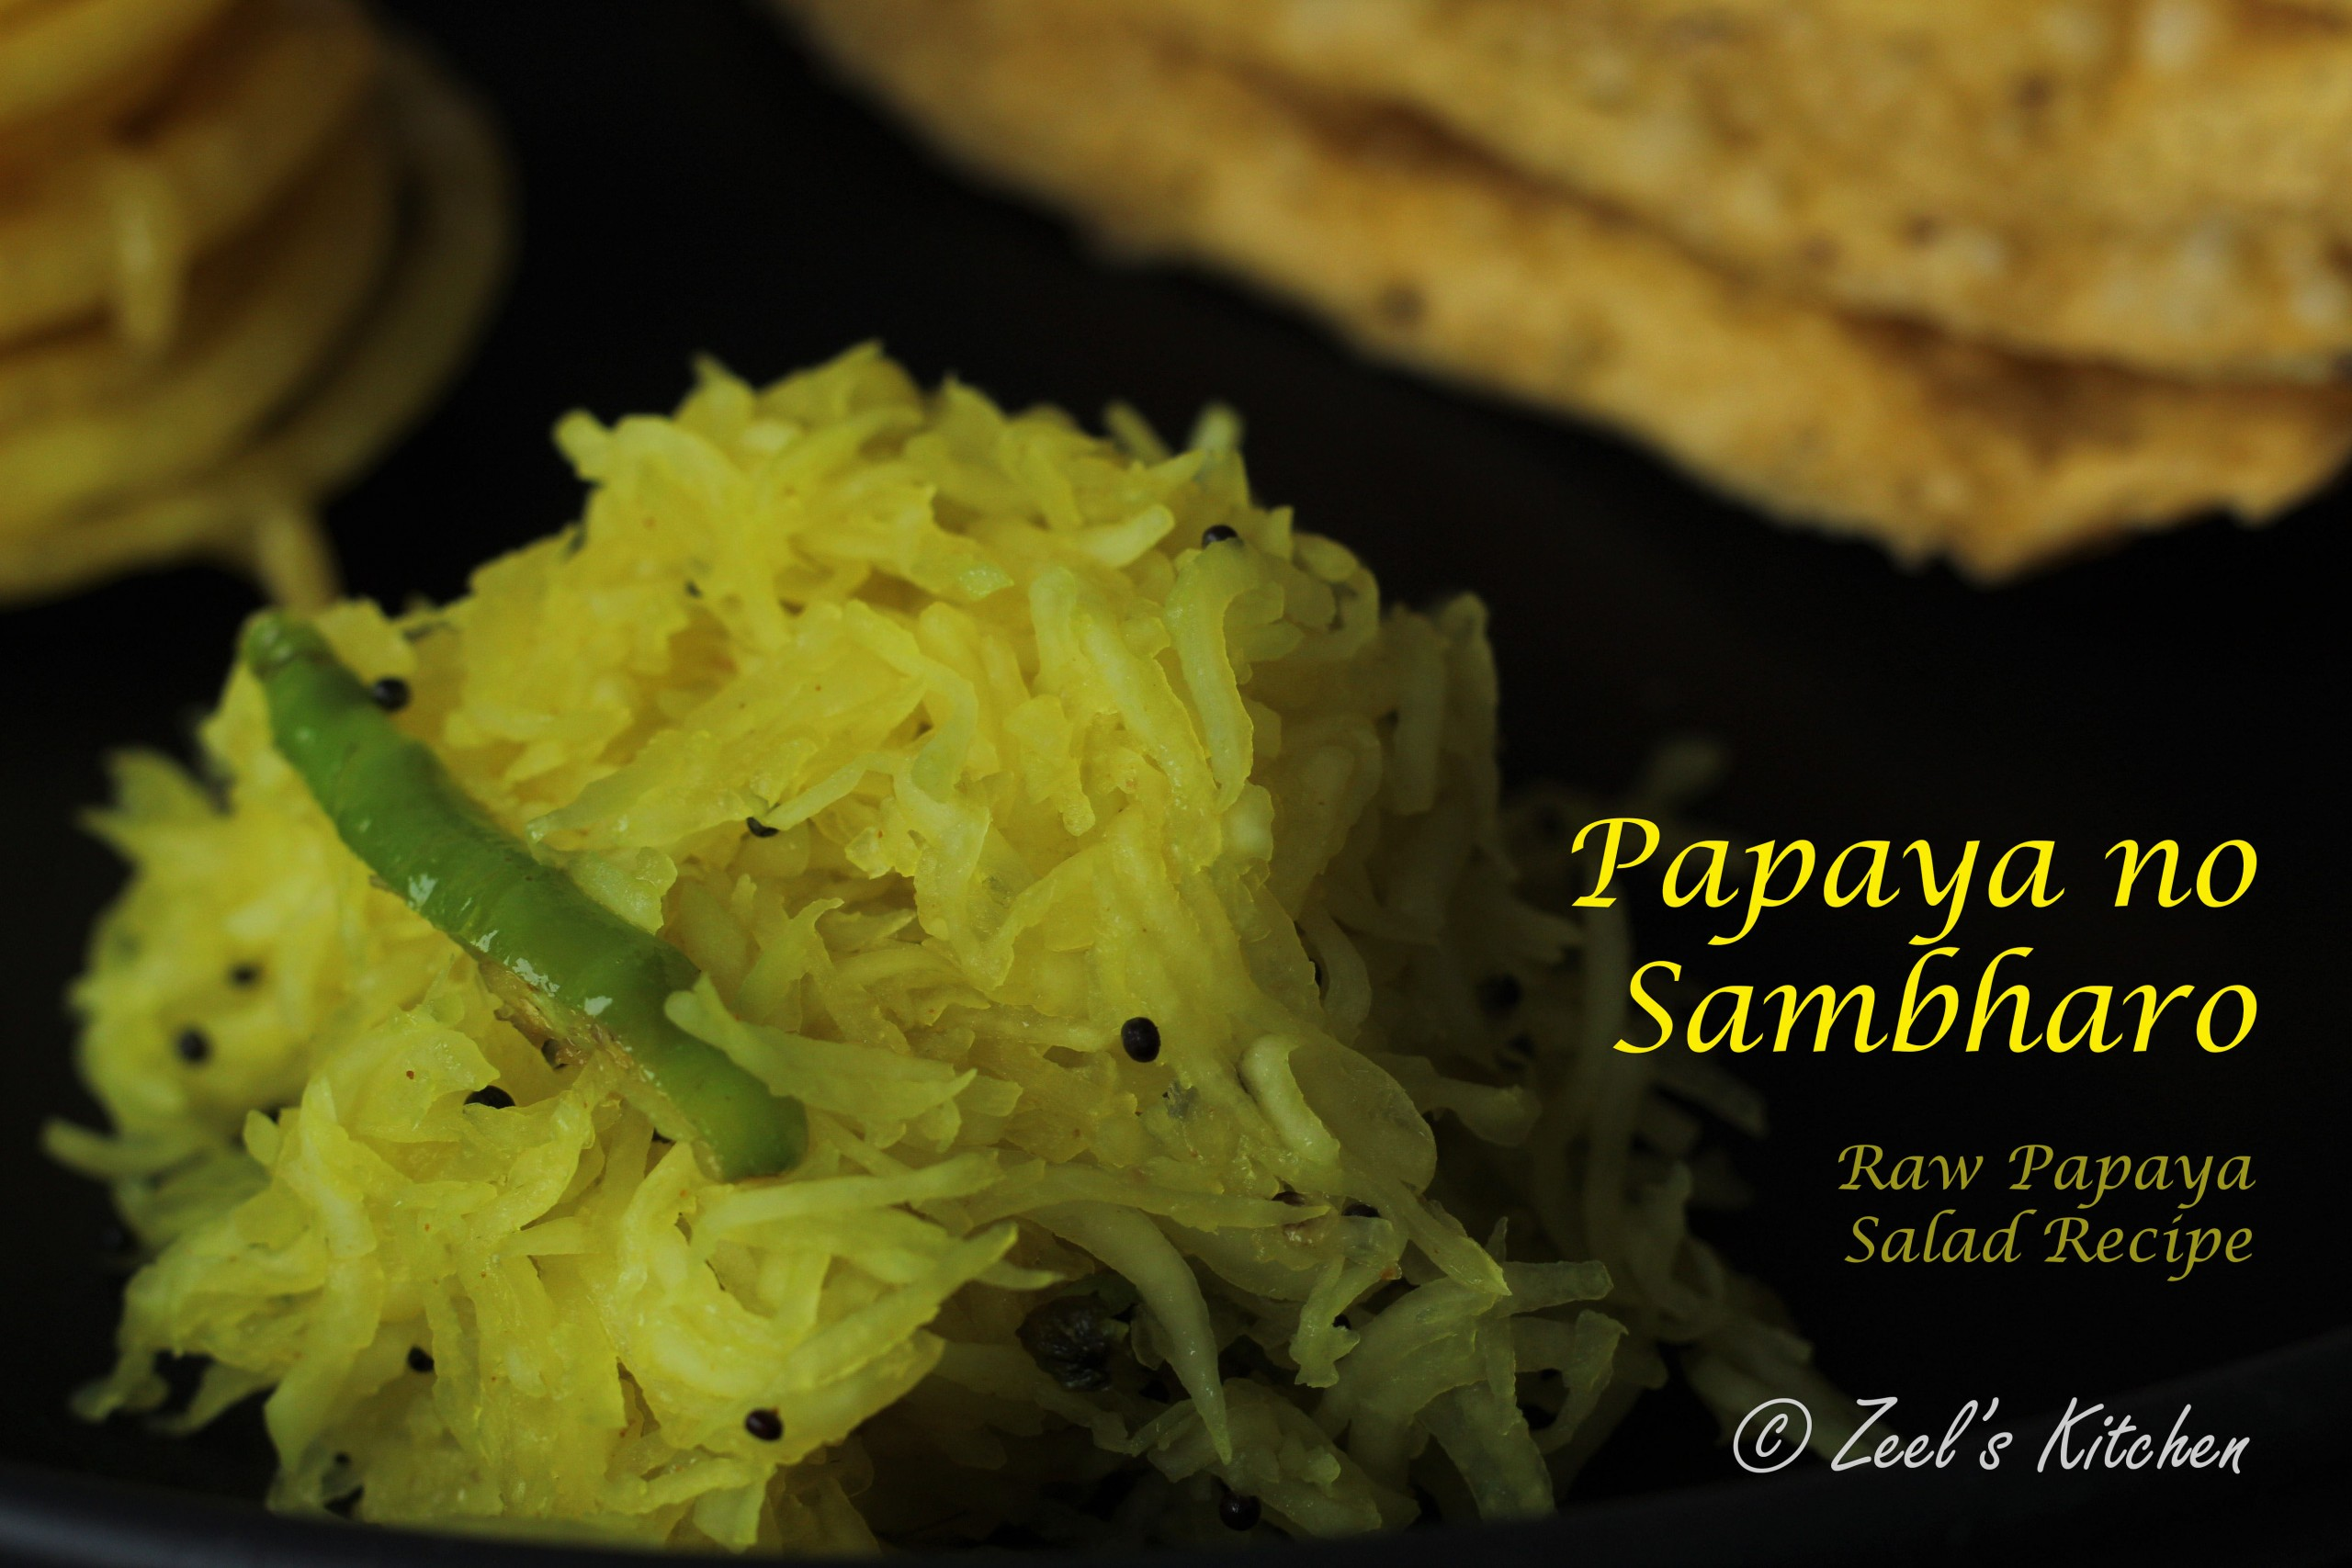 Papaya Sambharo | Papaya Lachha Salad Recipe | Gujarati Raw Papaya Salad Recipe for Fafda Jalebi